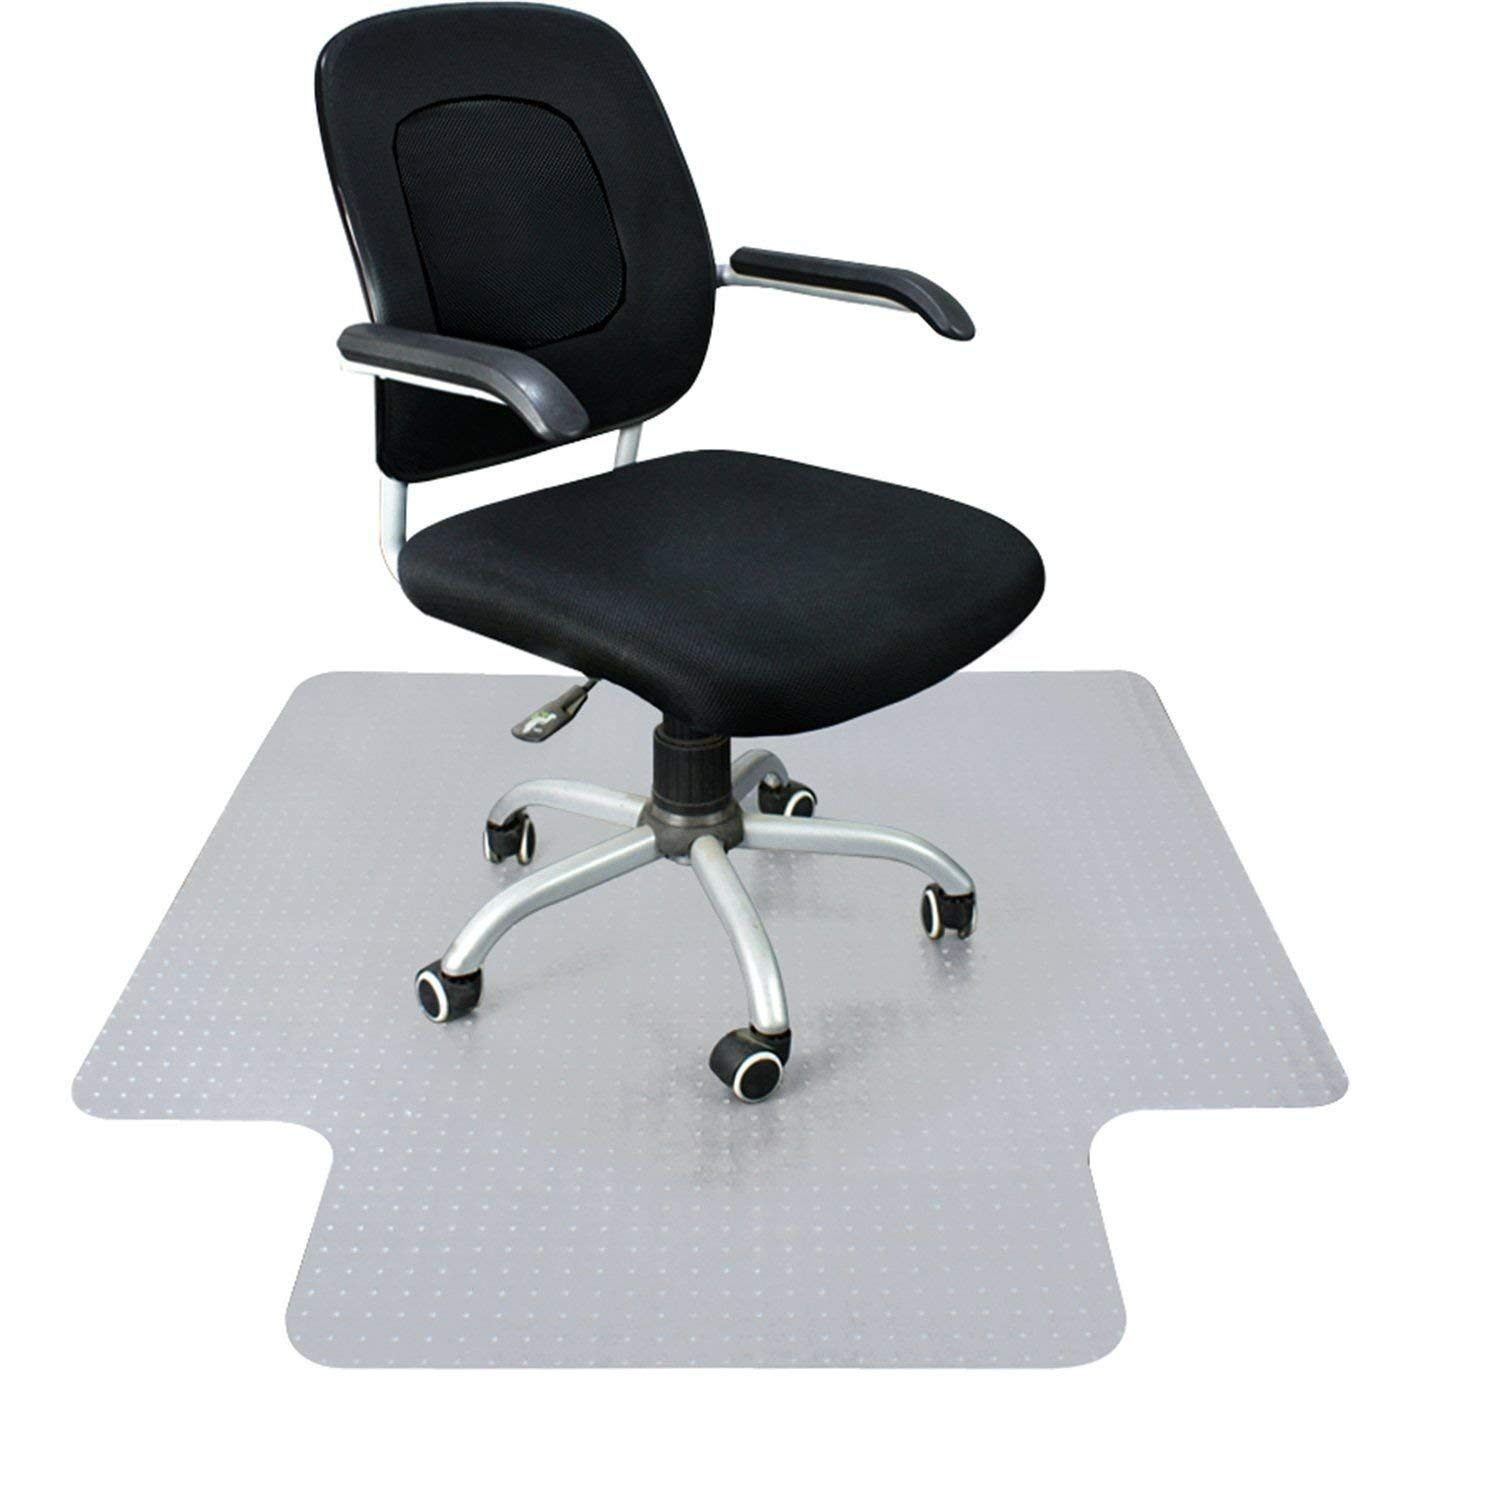 Rackarster Carpet Chair Mat, 36'' x 48'' PVC Desk Chair Mat for Low, Standard and Medium Pile Carpets, Transparent